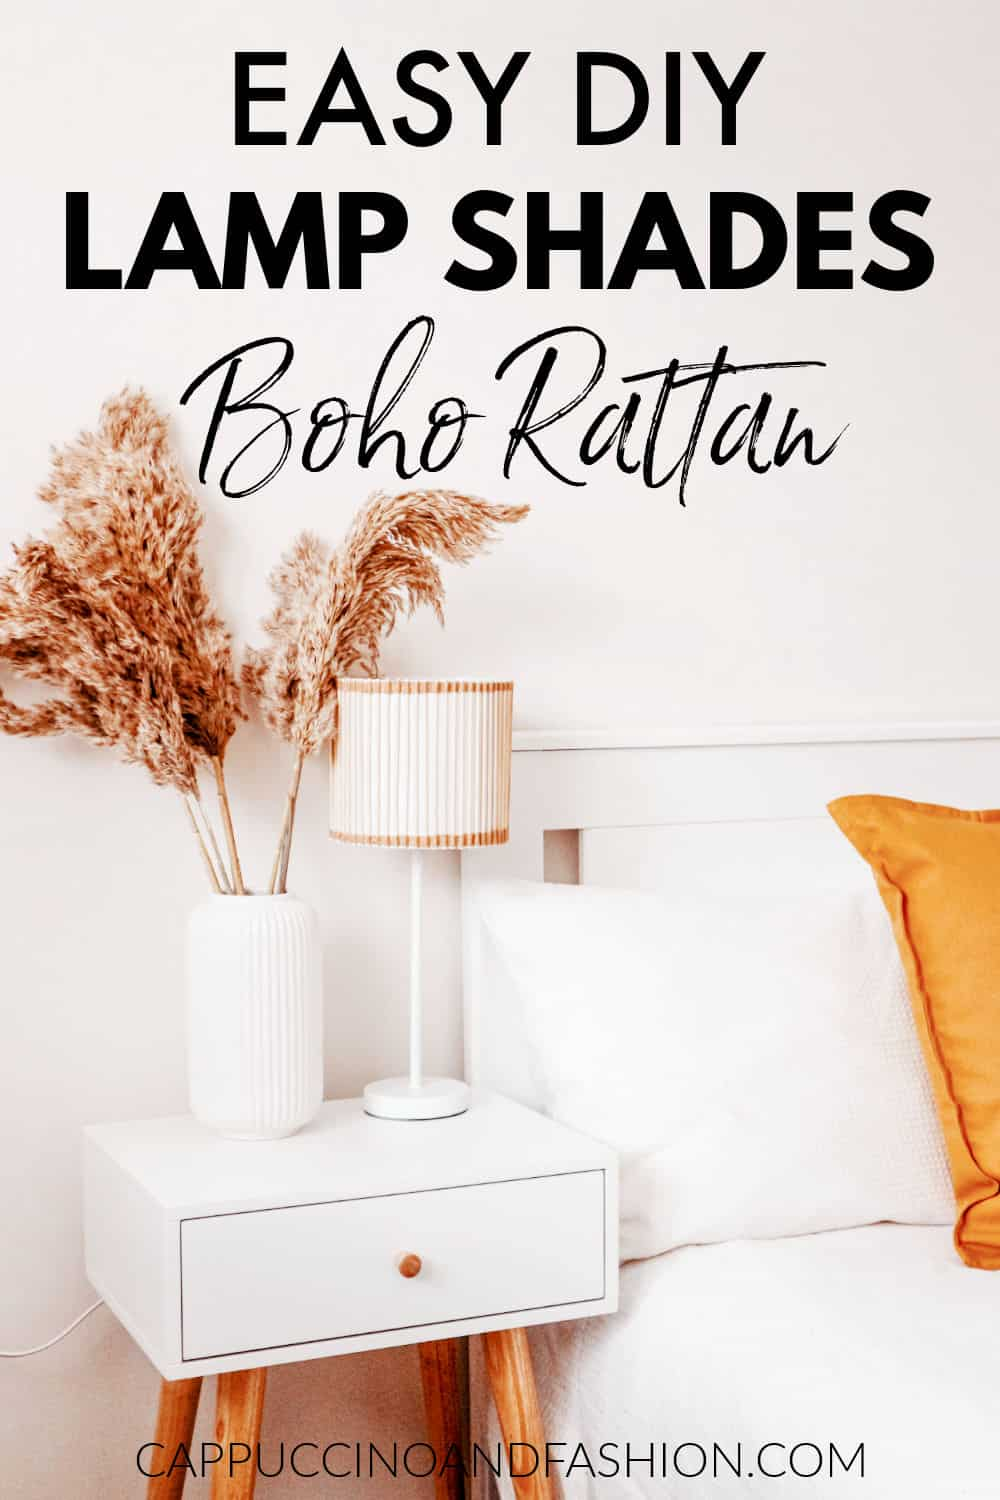 Easy DIY Lamp Shades Boho Rattan Scandi